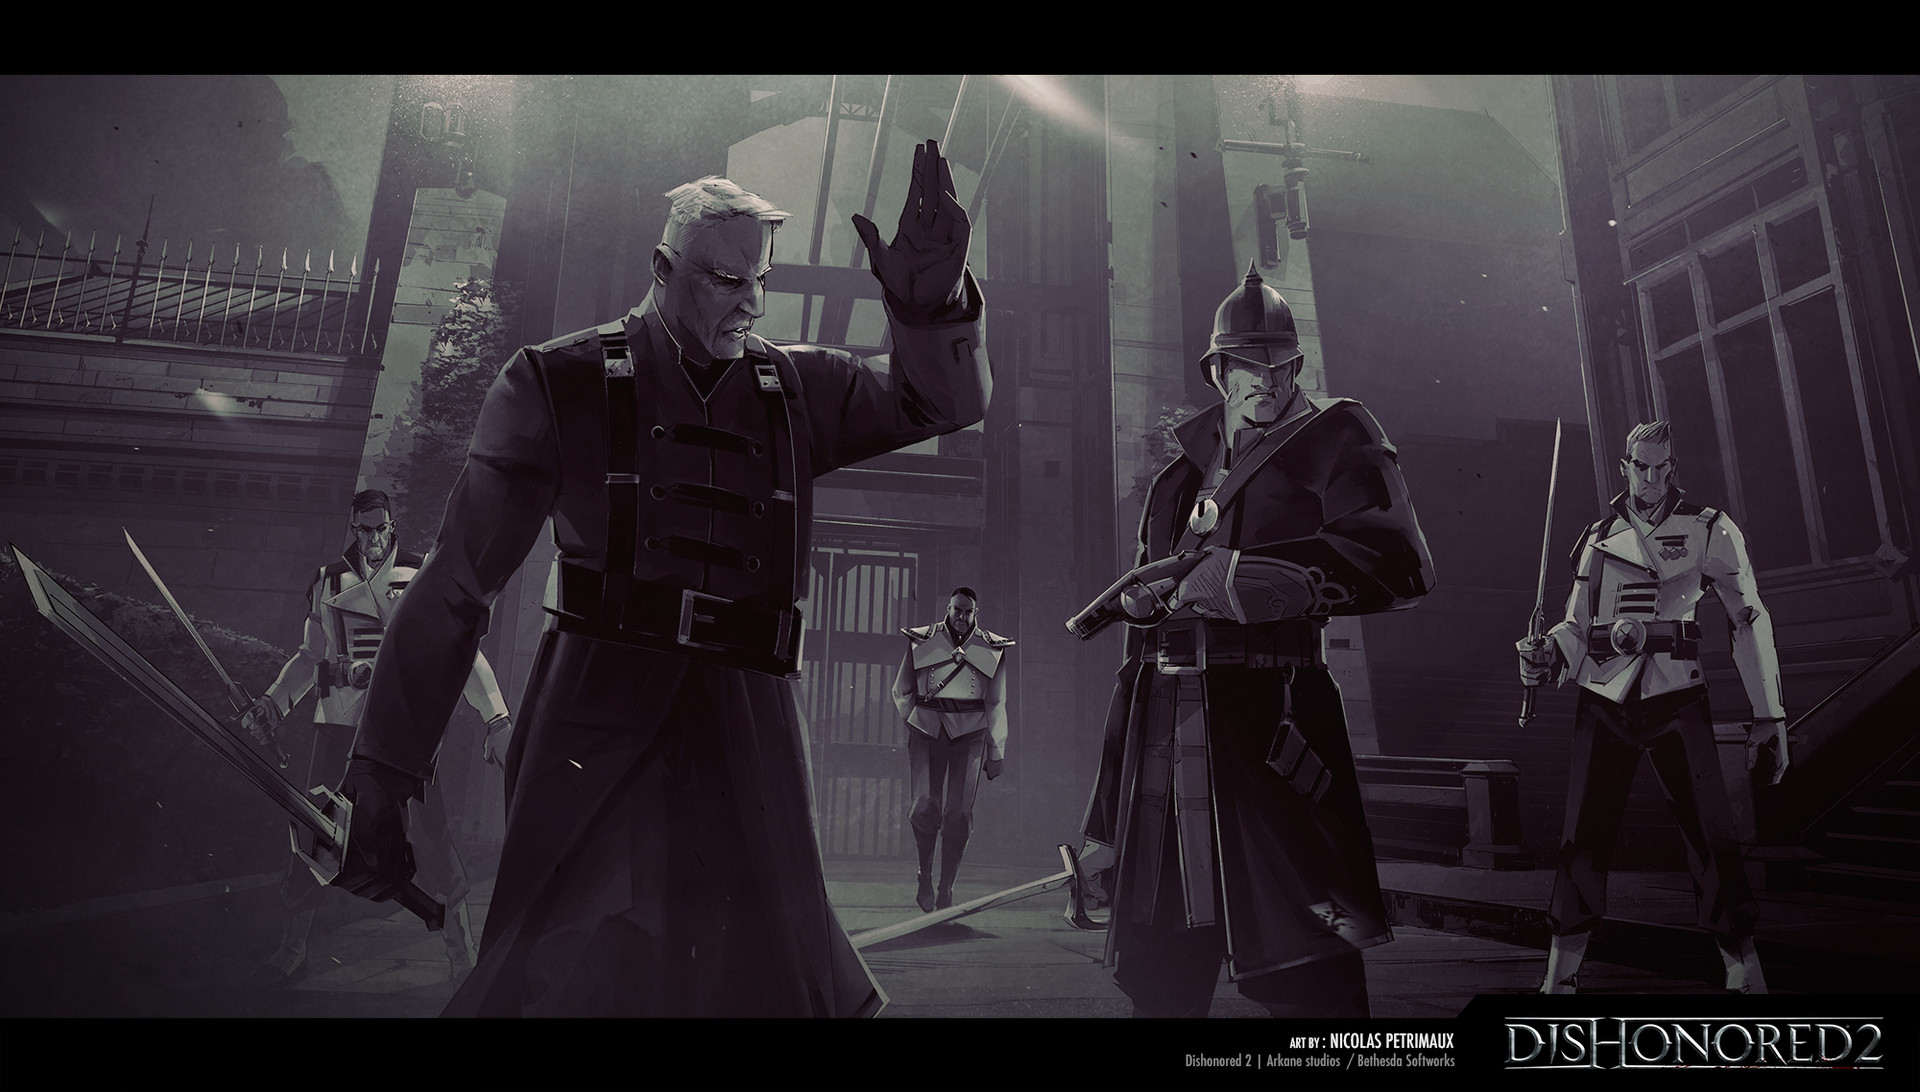 Nicolas petrimaux templatecredit dishonored2 eow02